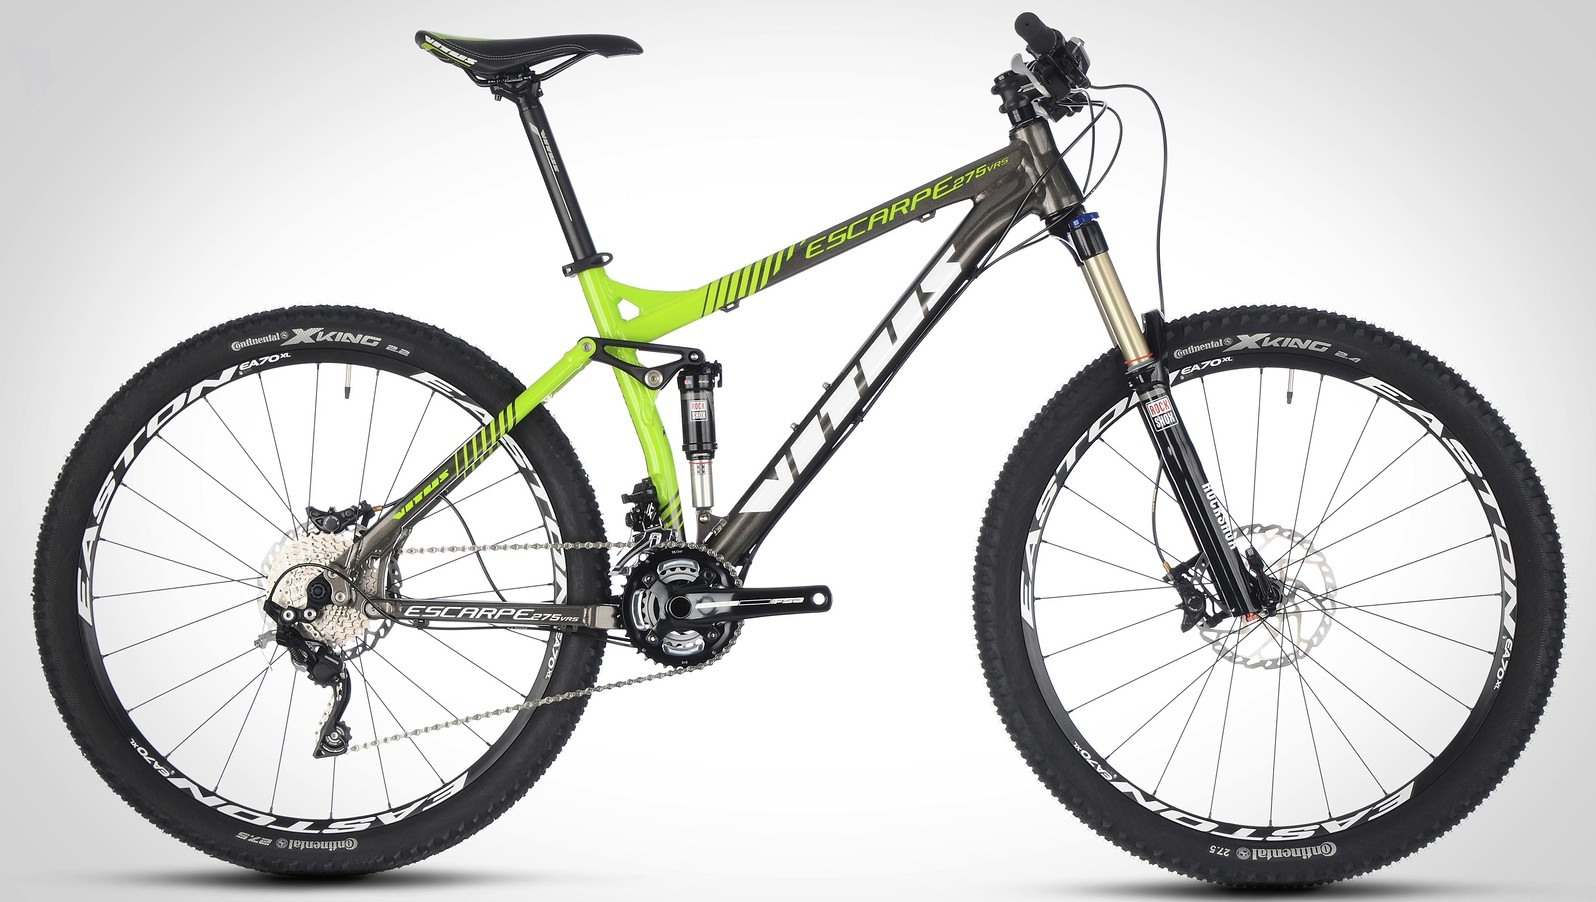 2014 Vitus Escarpe 275 VRS Bike